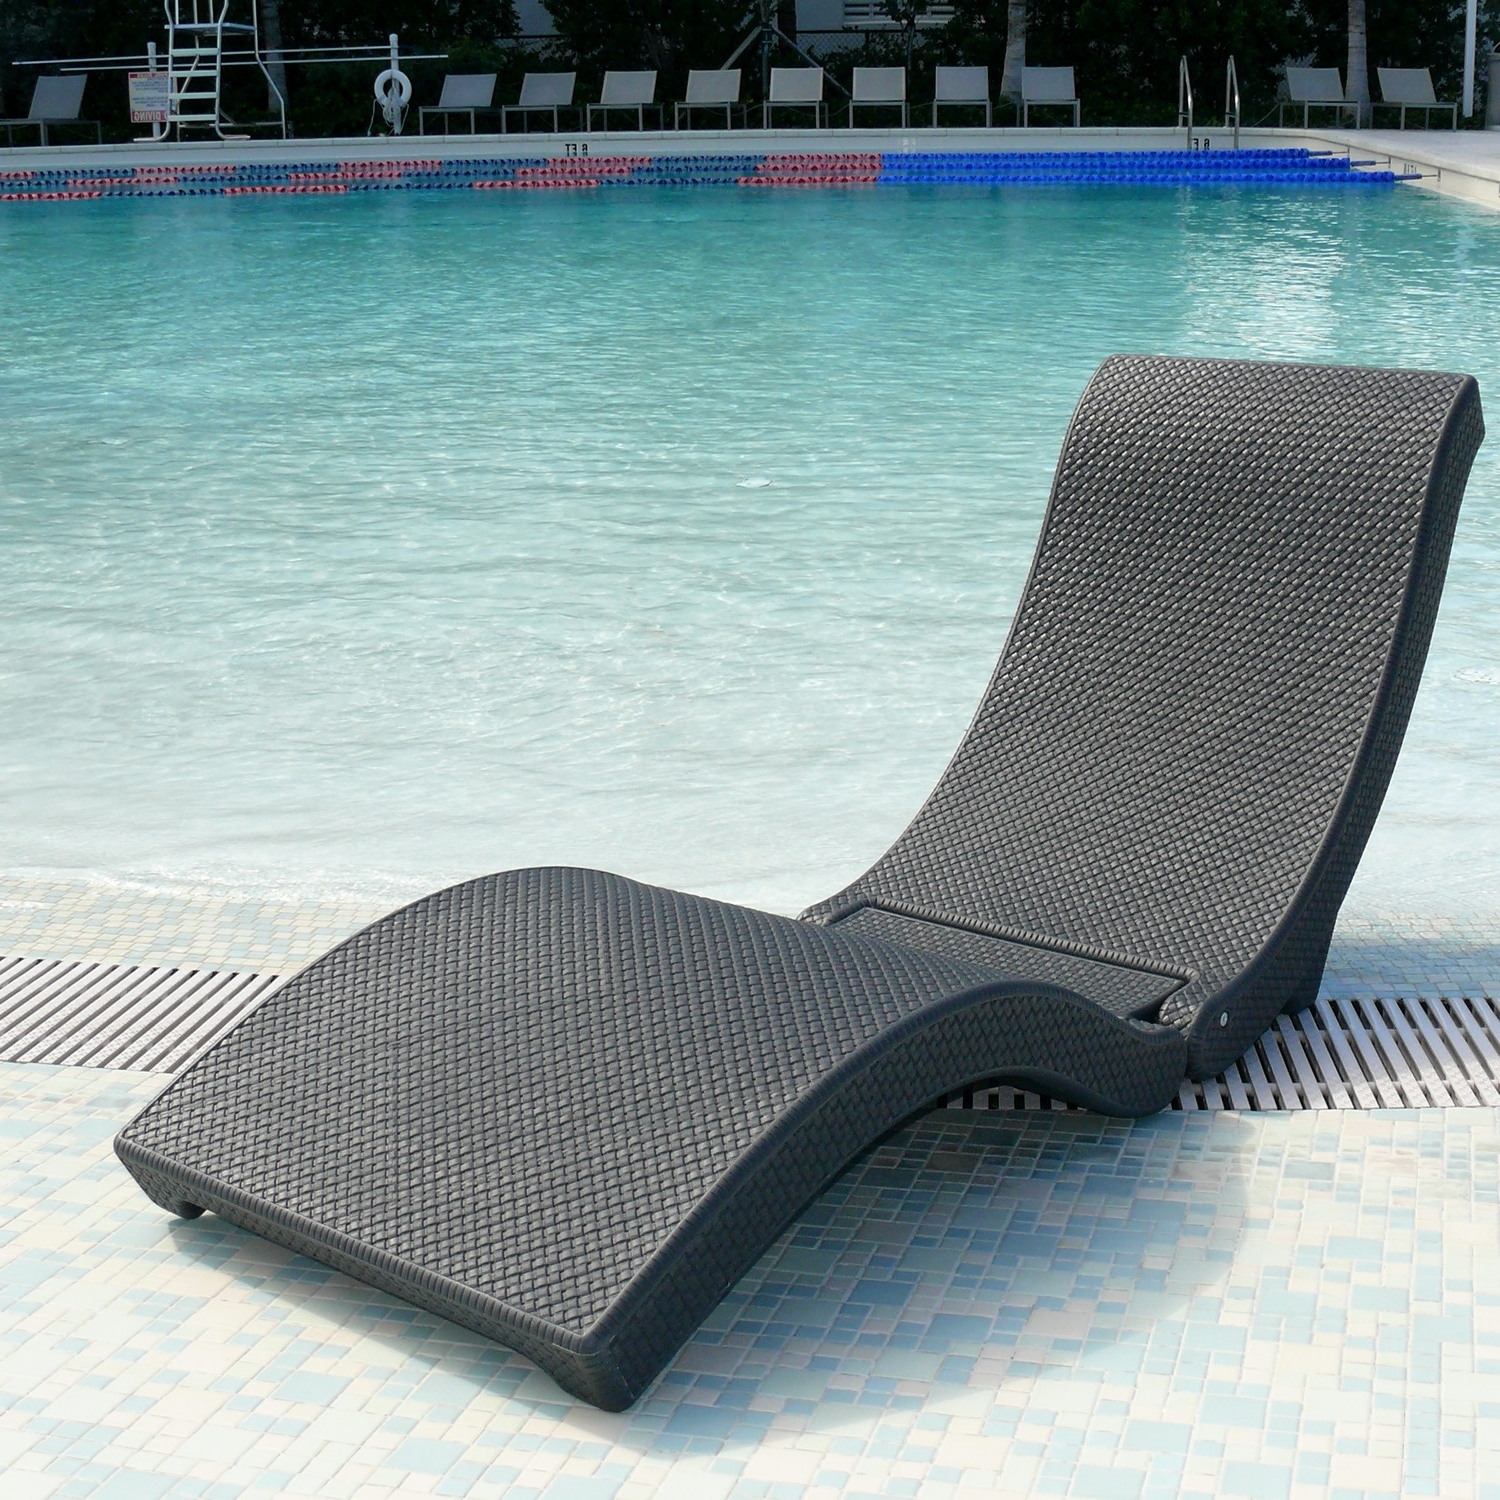 Famous Plastic Lounge Chairs Pool (View 4 of 15)